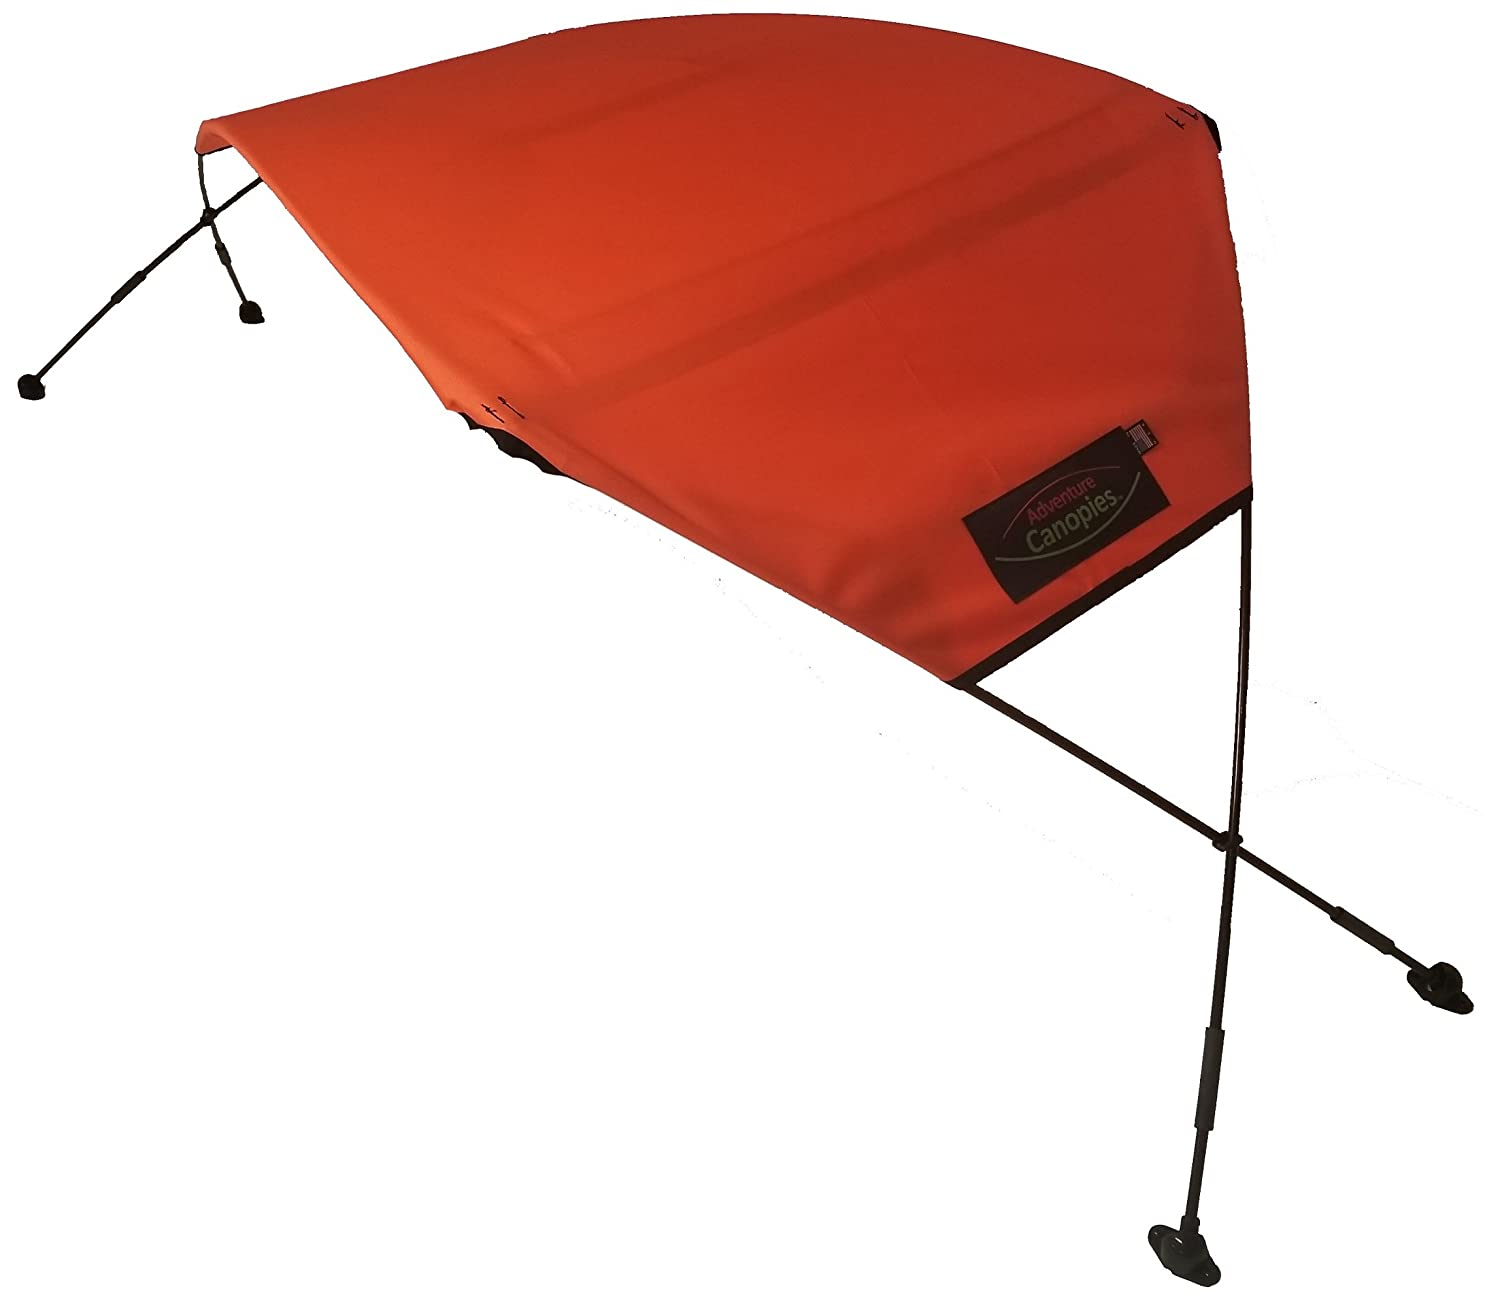 Kayak Canopy Or Umbrella